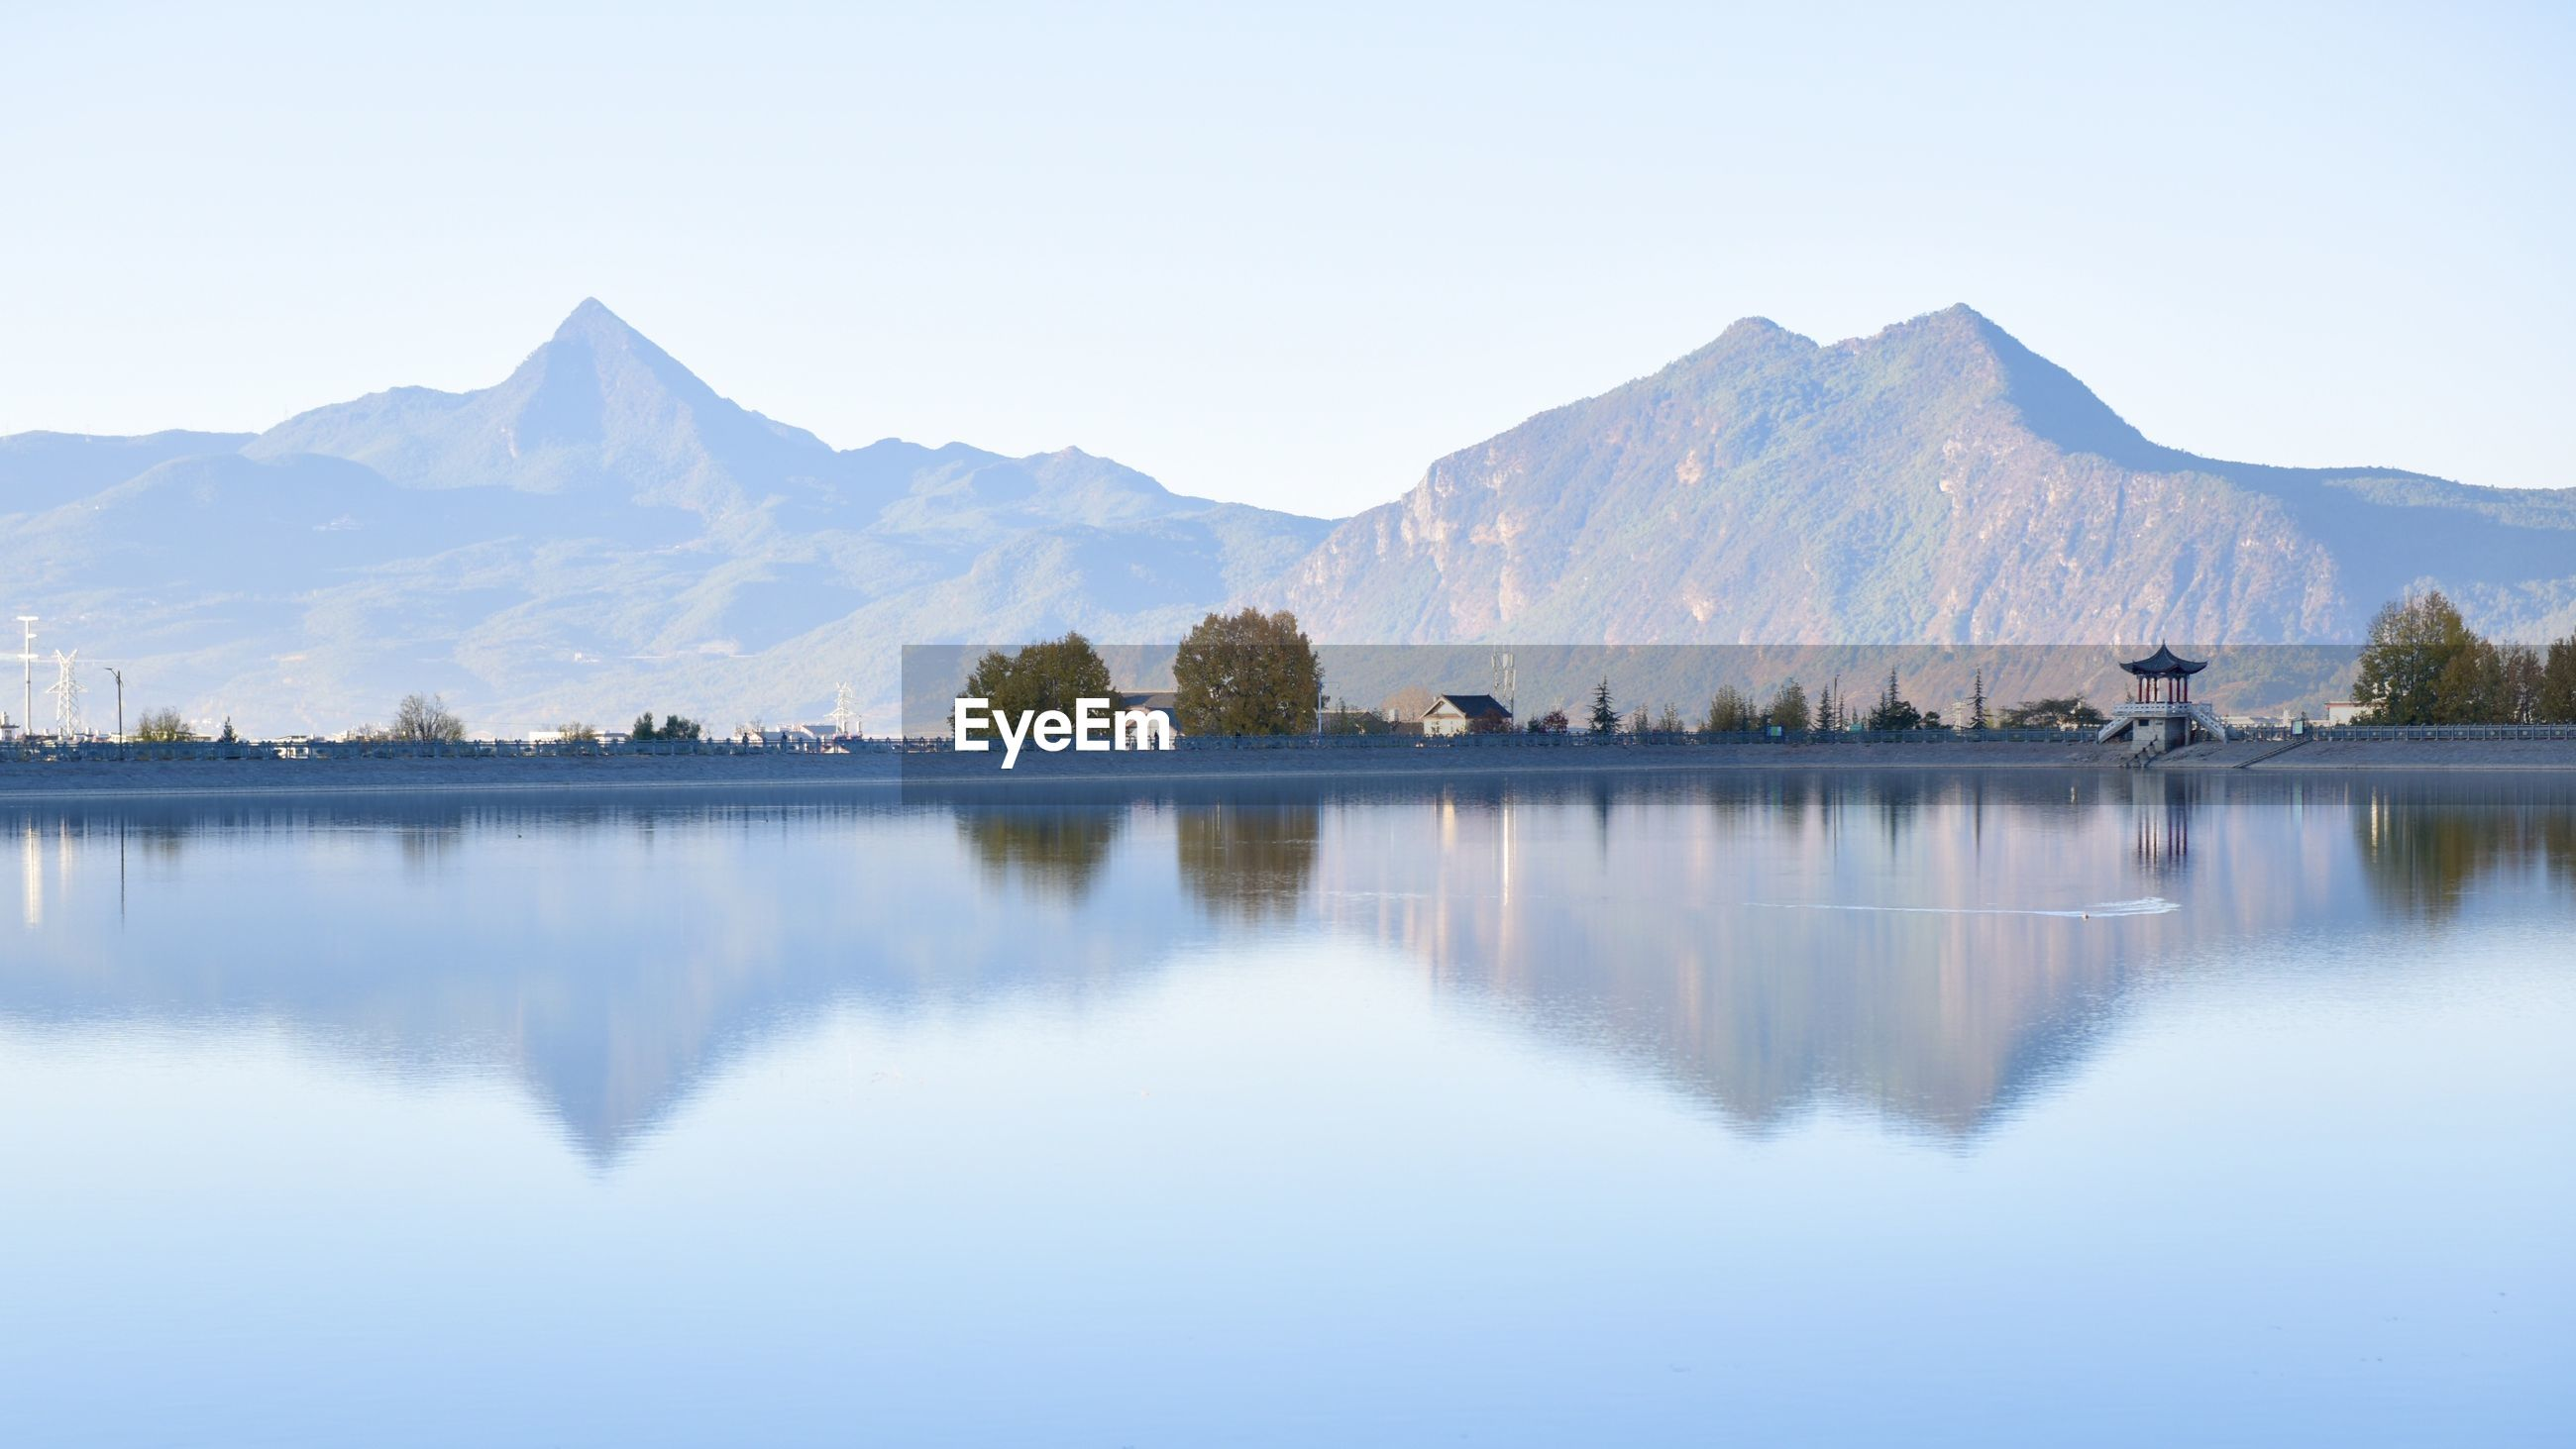 Panoramic view of lake with mountain range in background